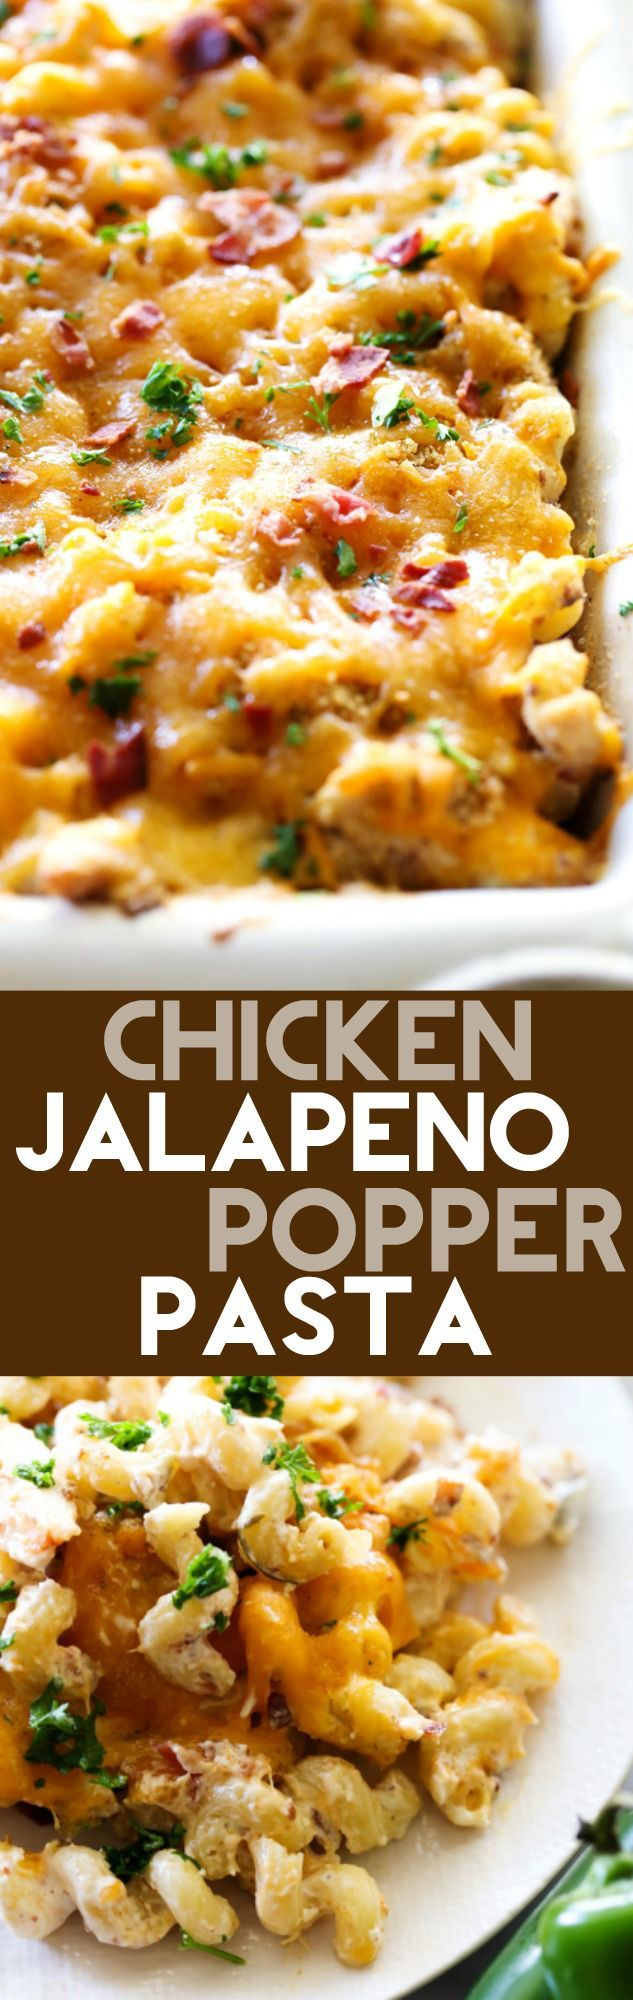 Chicken Jalapeño Popper Pasta... this recipe is loaded with creamy cheesy goodness! It has the right amount of heat and cool and is such a flavor packed meal the whole family will go crazy over!